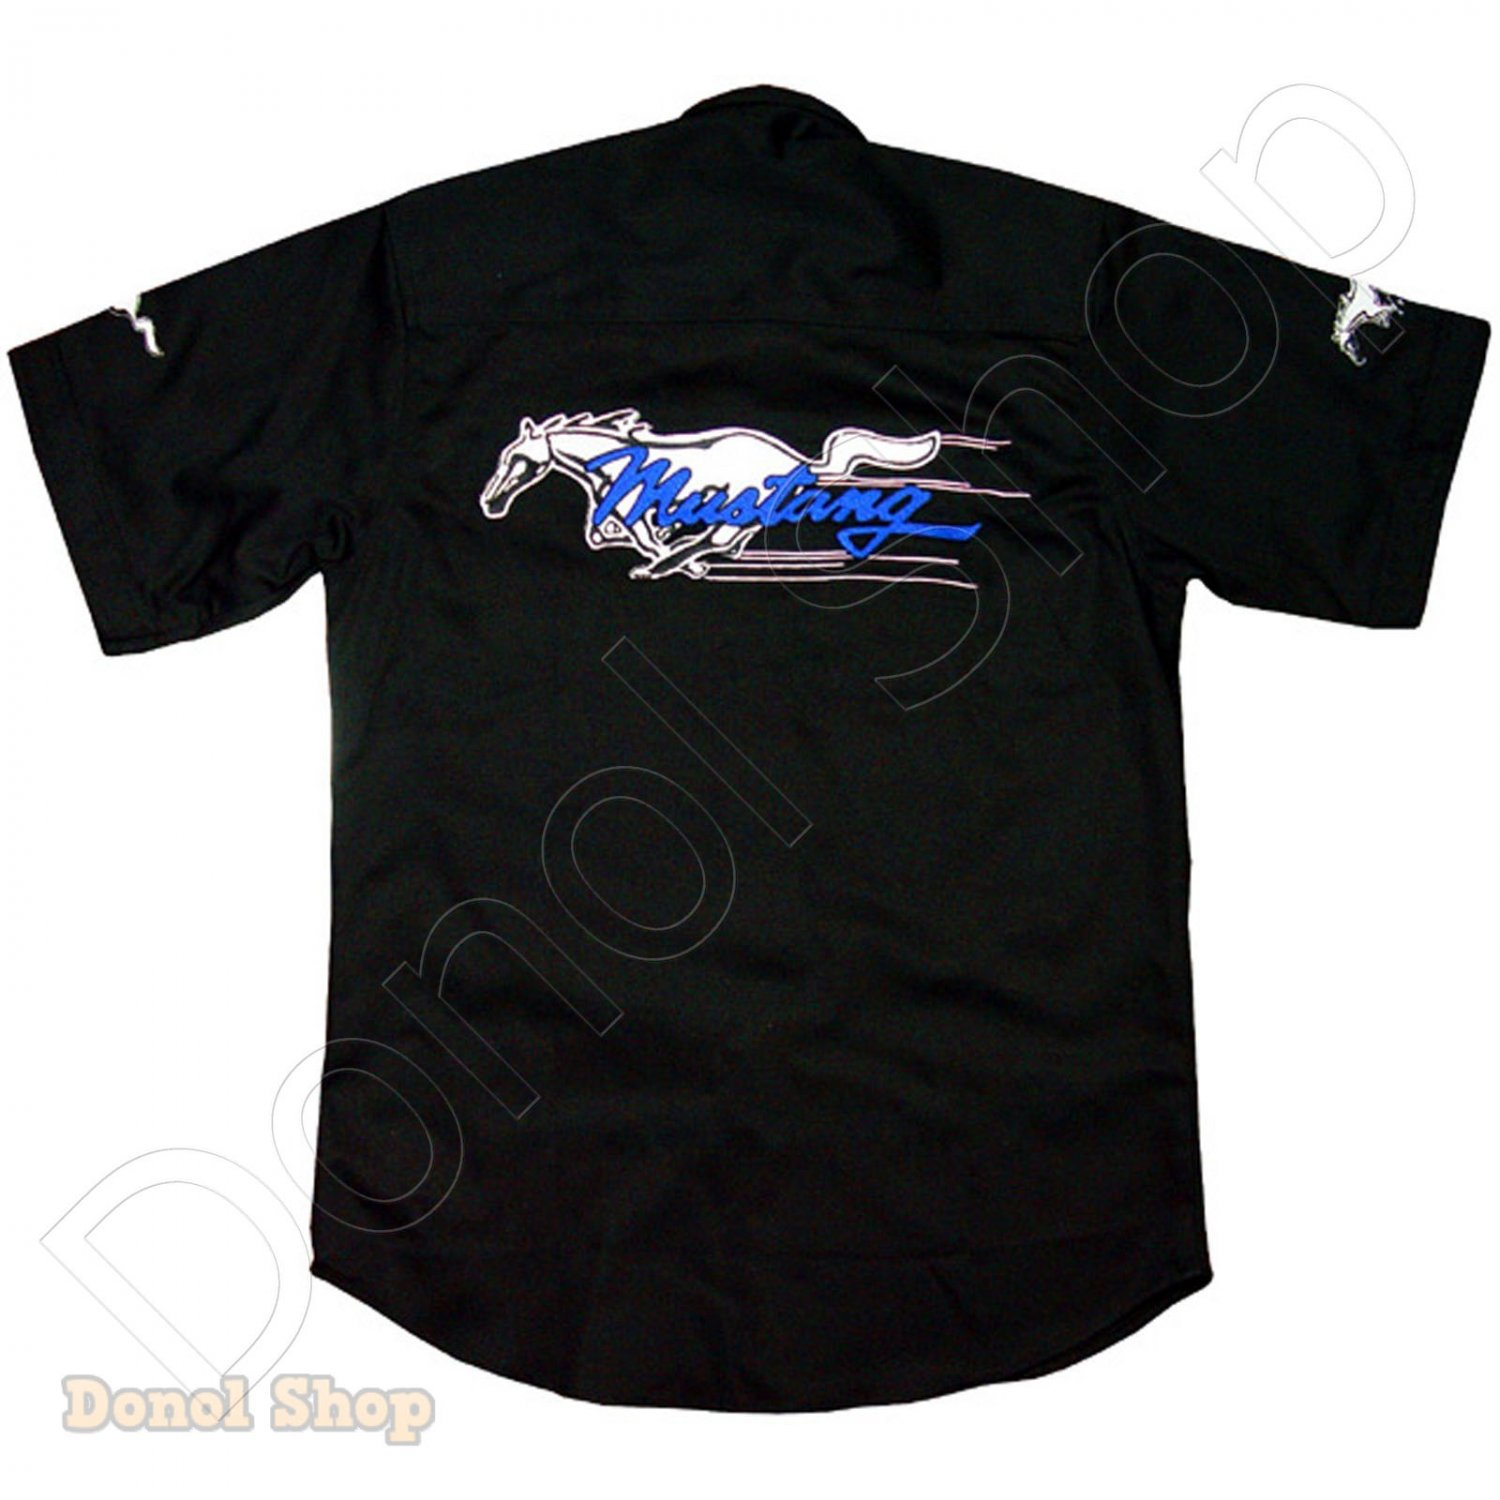 FORD MUSTANG MOTOR SPORT TEAM RACING SHIRT size S